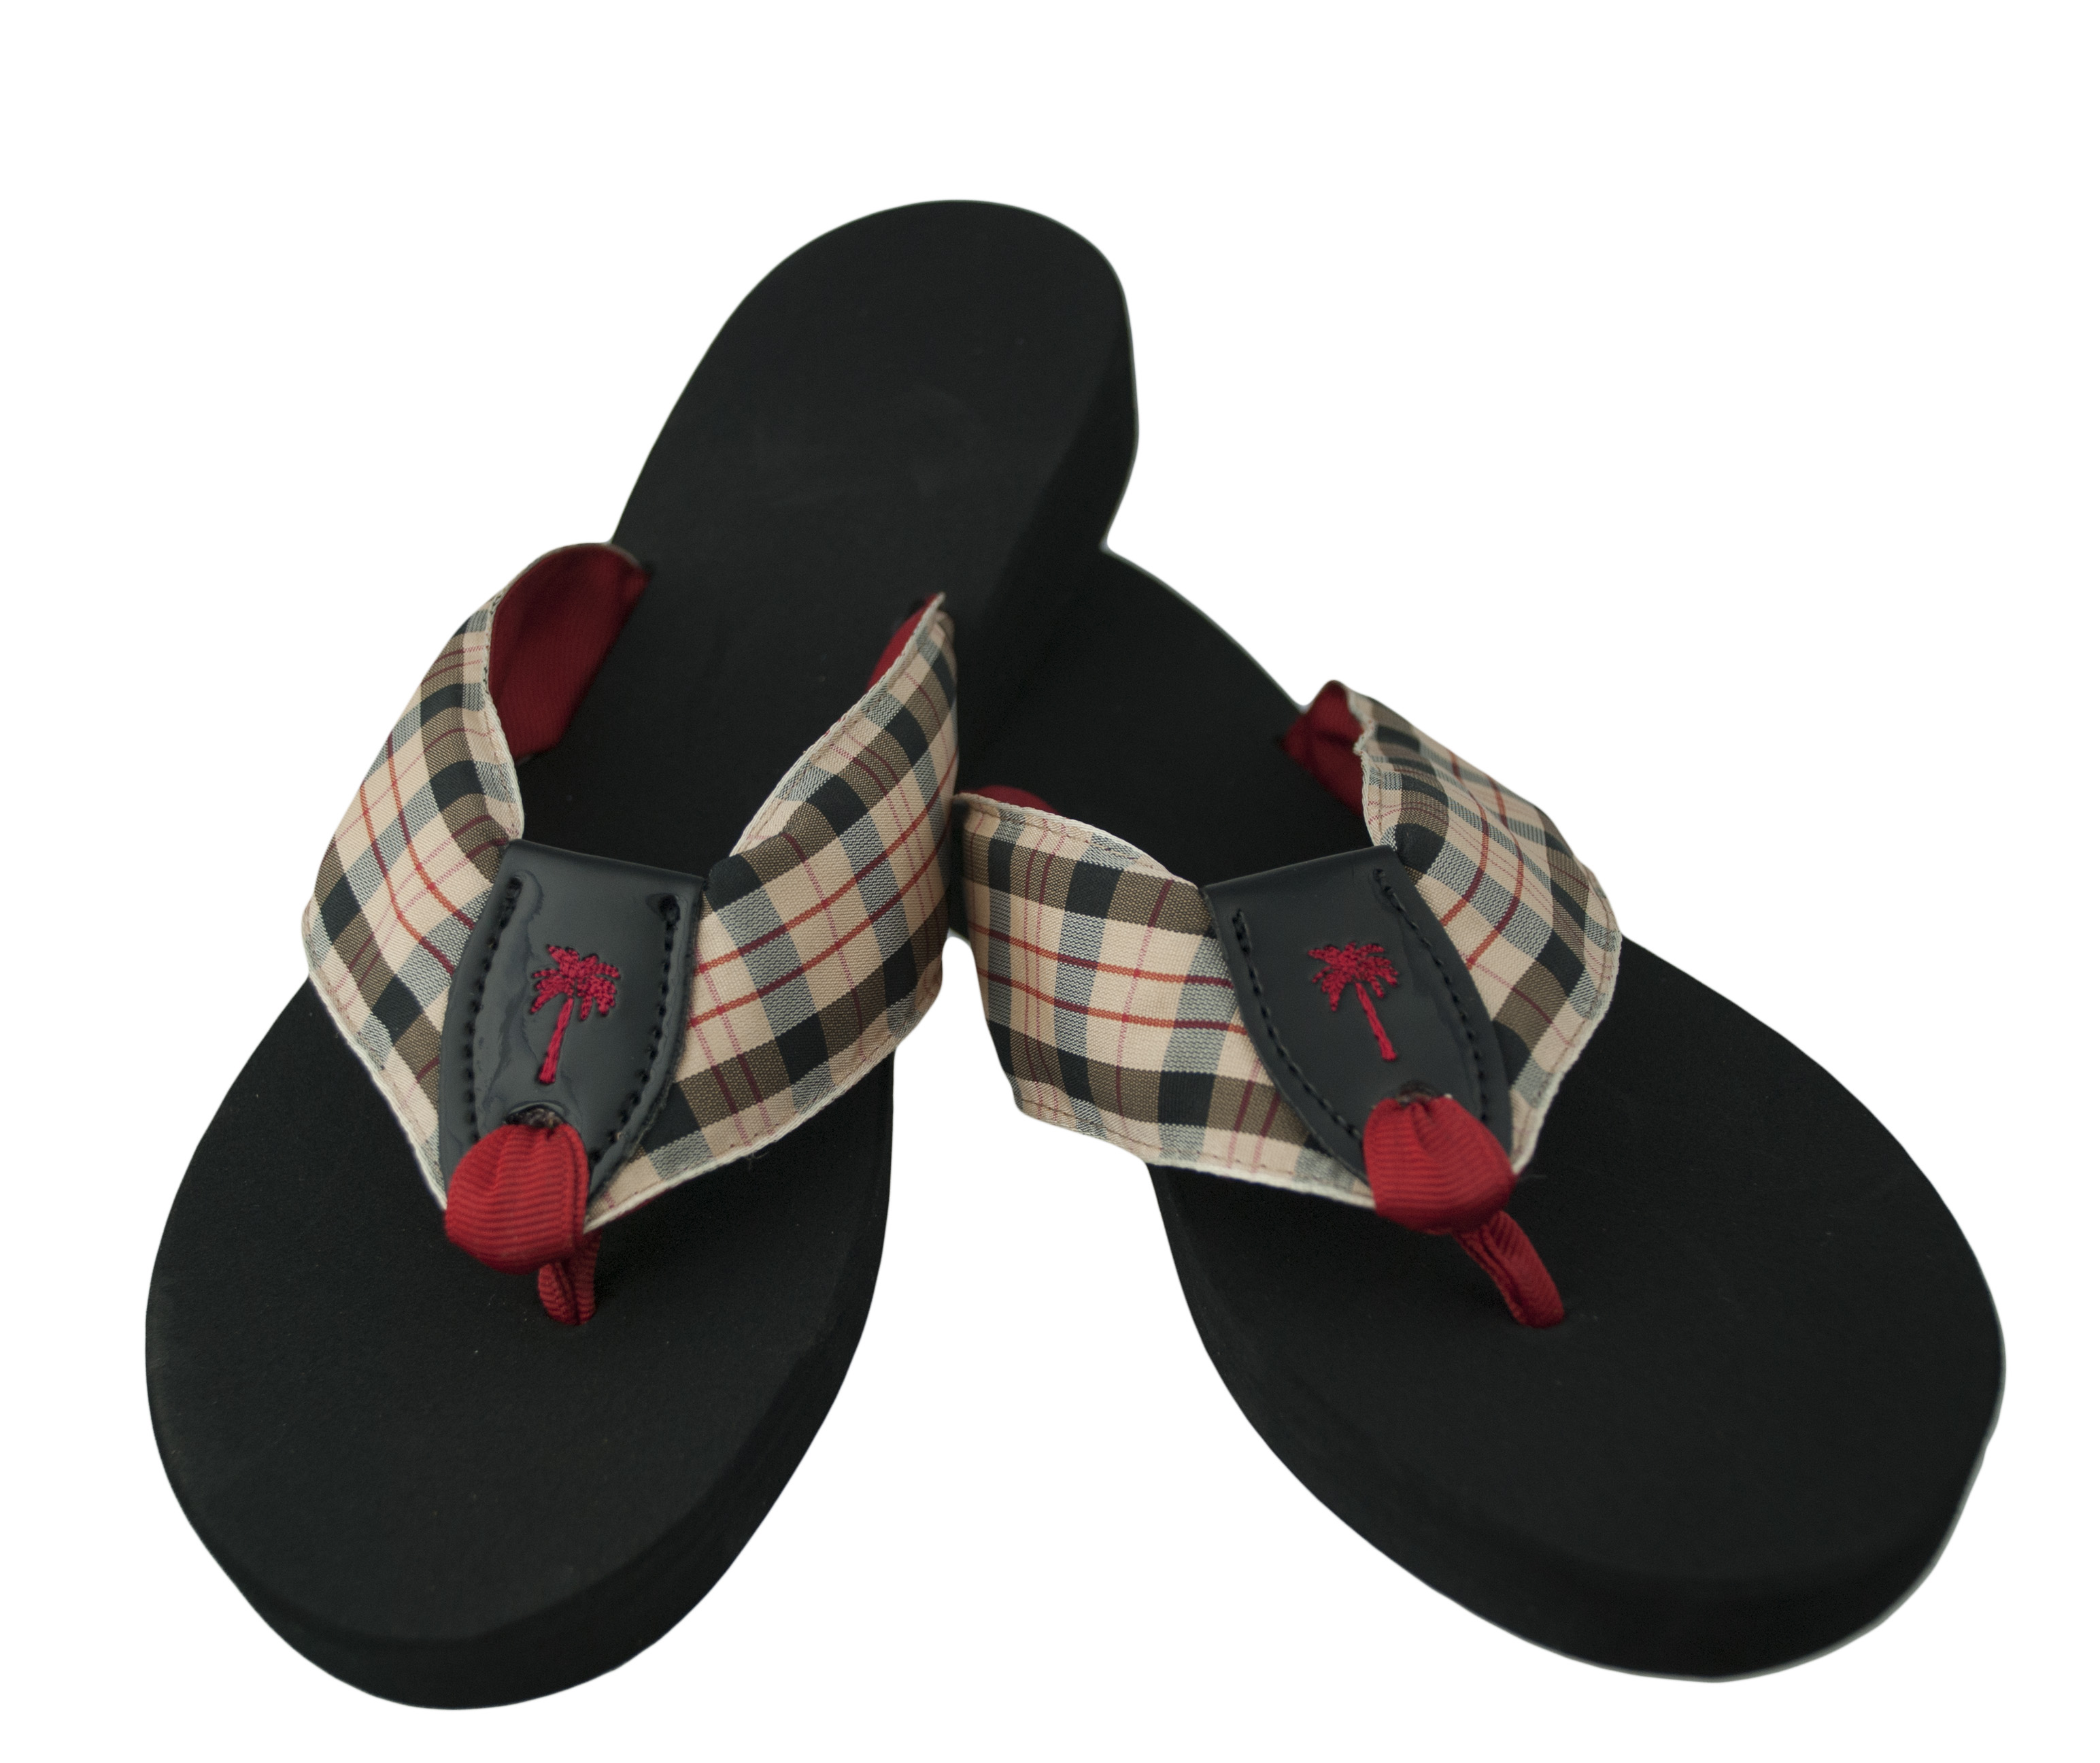 44f3b82af9130 Classic Plaid with Black Patent and Red Toe   Palm  Eliza B   Leather Man  Ltd